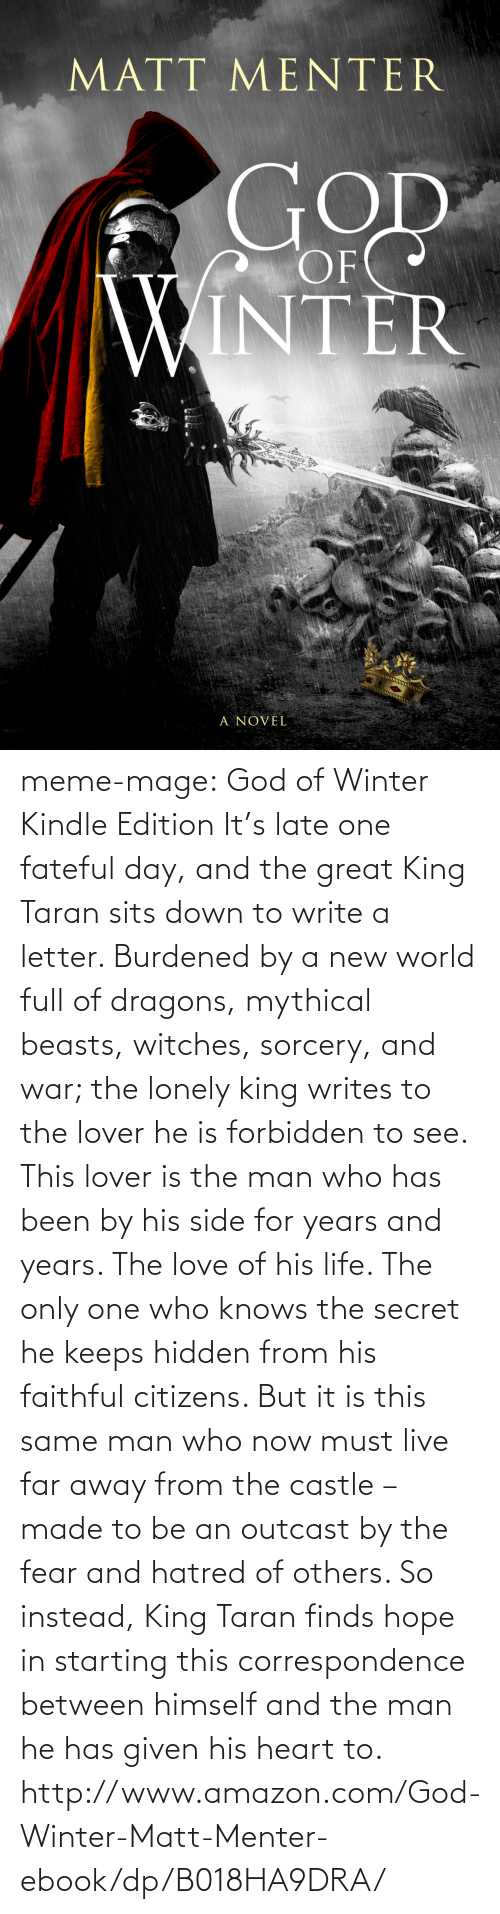 World Full: MATT MENTER  OF  INTER  A NOVEL meme-mage:    God of Winter Kindle Edition     It's late one fateful day, and the great King Taran sits down to write a letter. Burdened by a new world full of dragons, mythical beasts, witches, sorcery, and war; the lonely king writes to the lover he is forbidden to see. This lover is the man who has been by his side for years and years. The love of his life. The only one who knows the secret he keeps hidden from his faithful citizens. But it is this same man who now must live far away from the castle – made to be an outcast by the fear and hatred of others. So instead, King Taran finds hope in starting this correspondence between himself and the man he has given his heart to.    http://www.amazon.com/God-Winter-Matt-Menter-ebook/dp/B018HA9DRA/